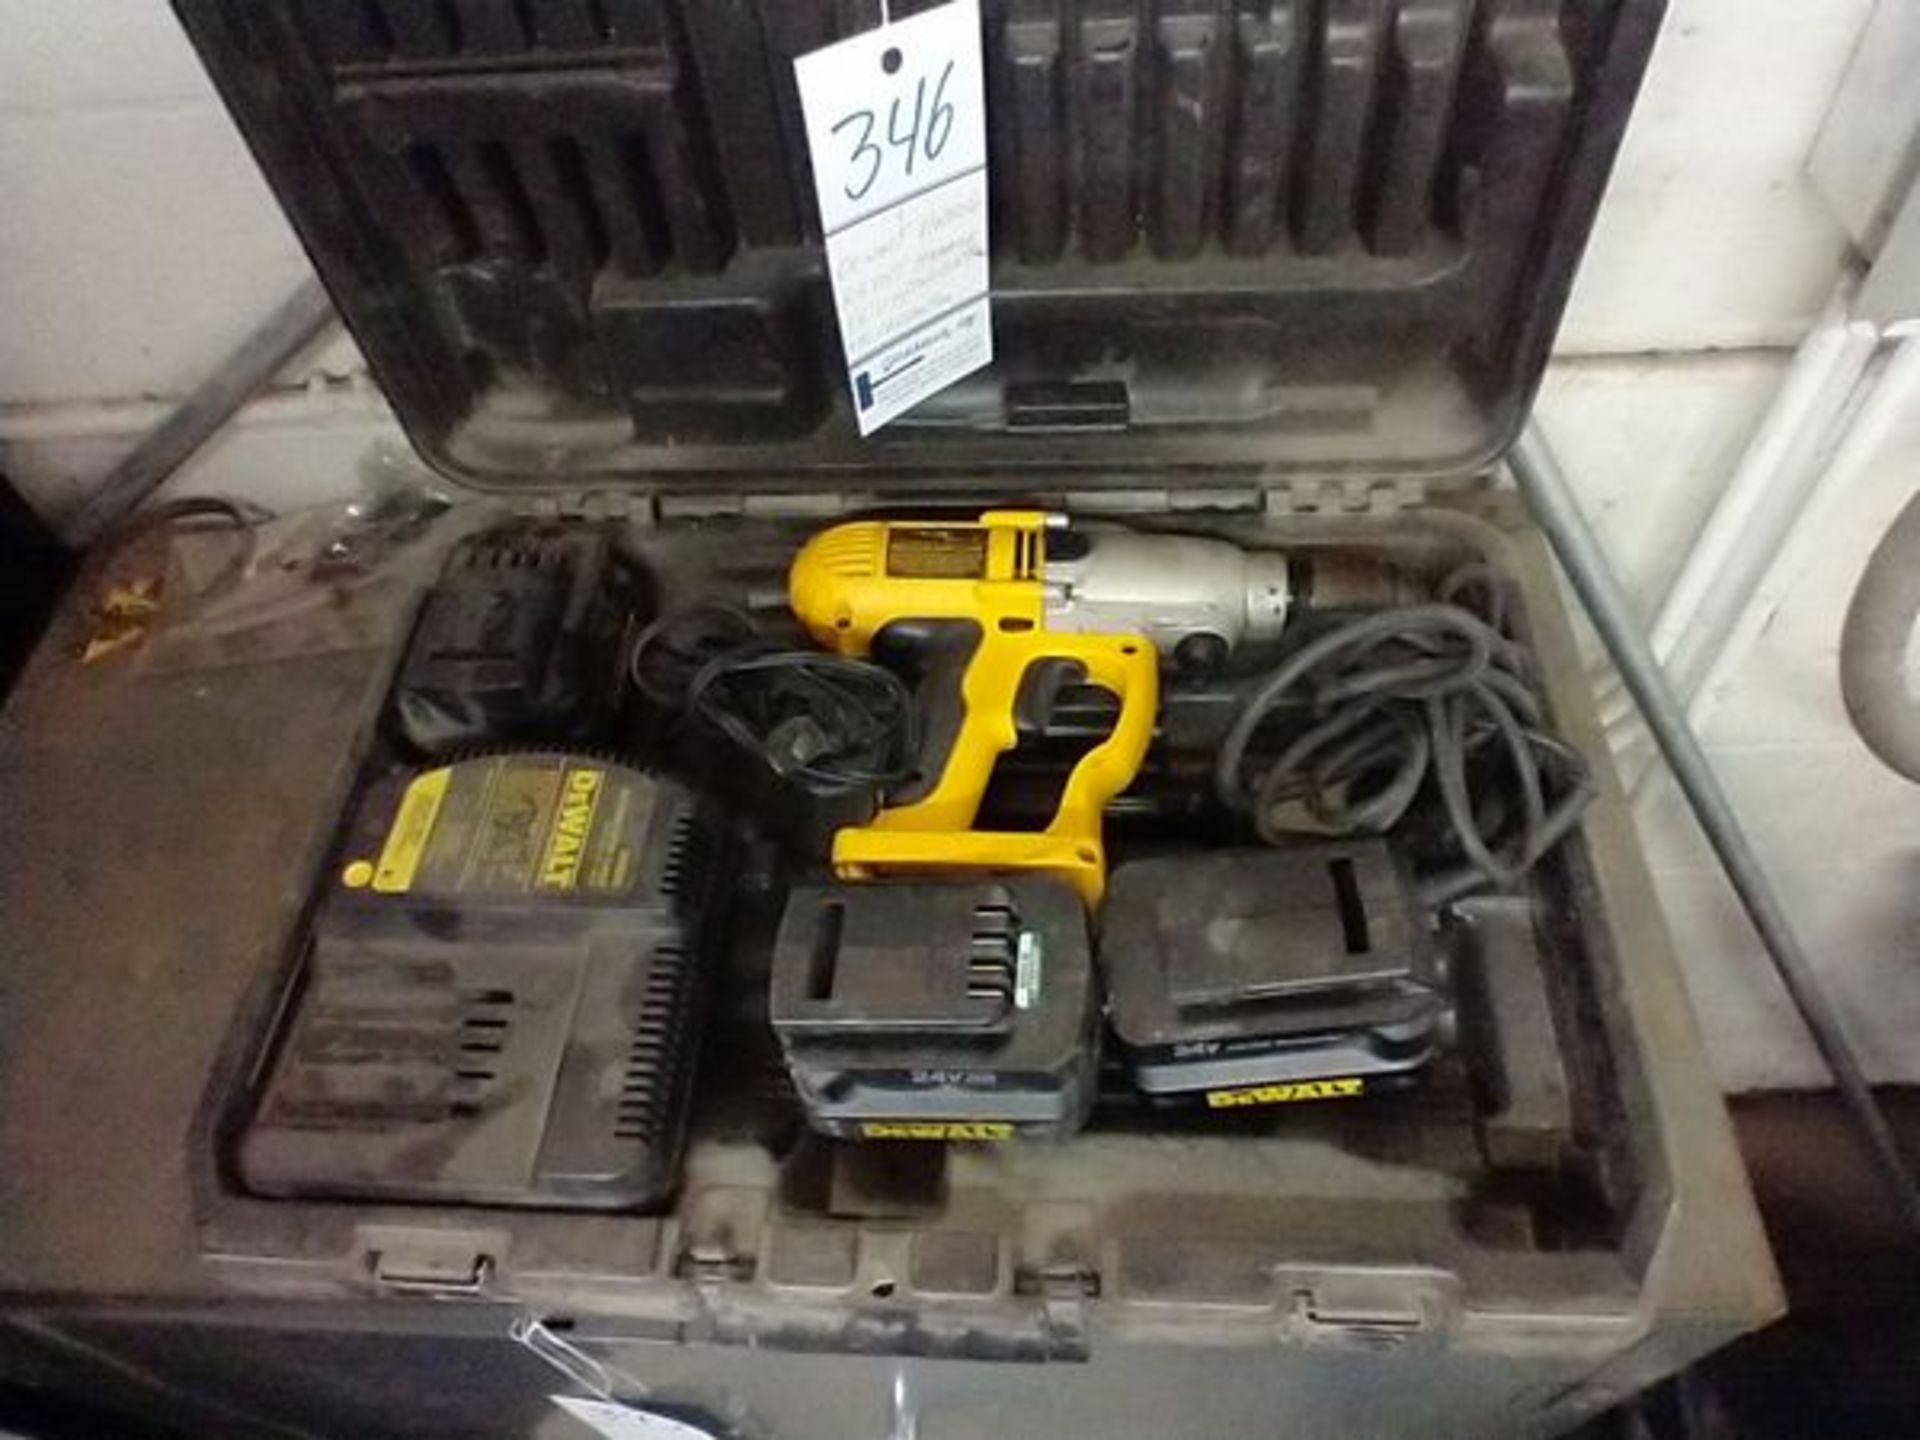 DEWALT DW006 24V HAMMER DRILL WITH 2 BATTERIES AND AC ADAPTER - Image 2 of 5